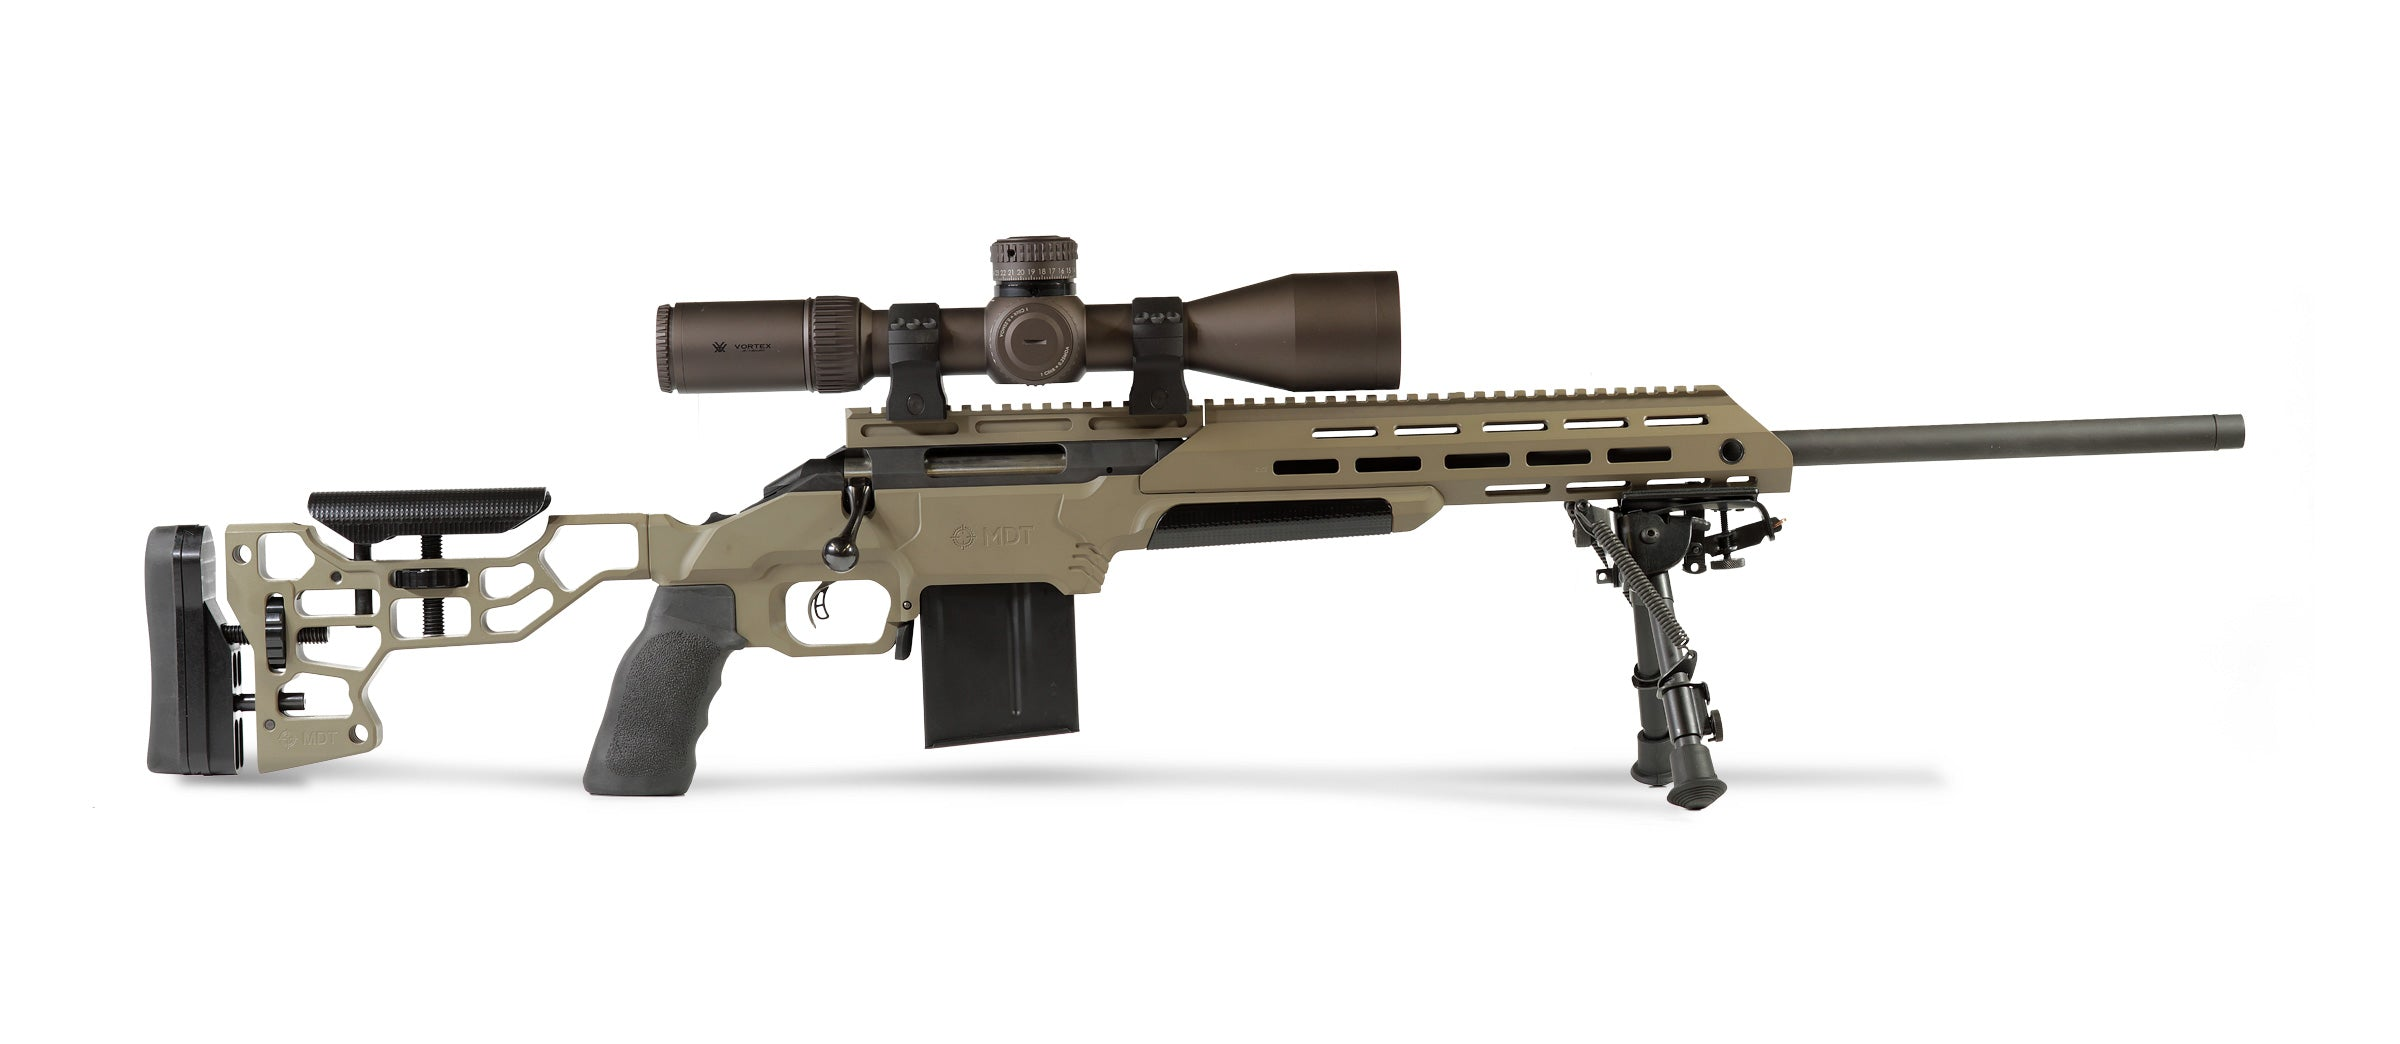 MDT ESS Chassis in FDE